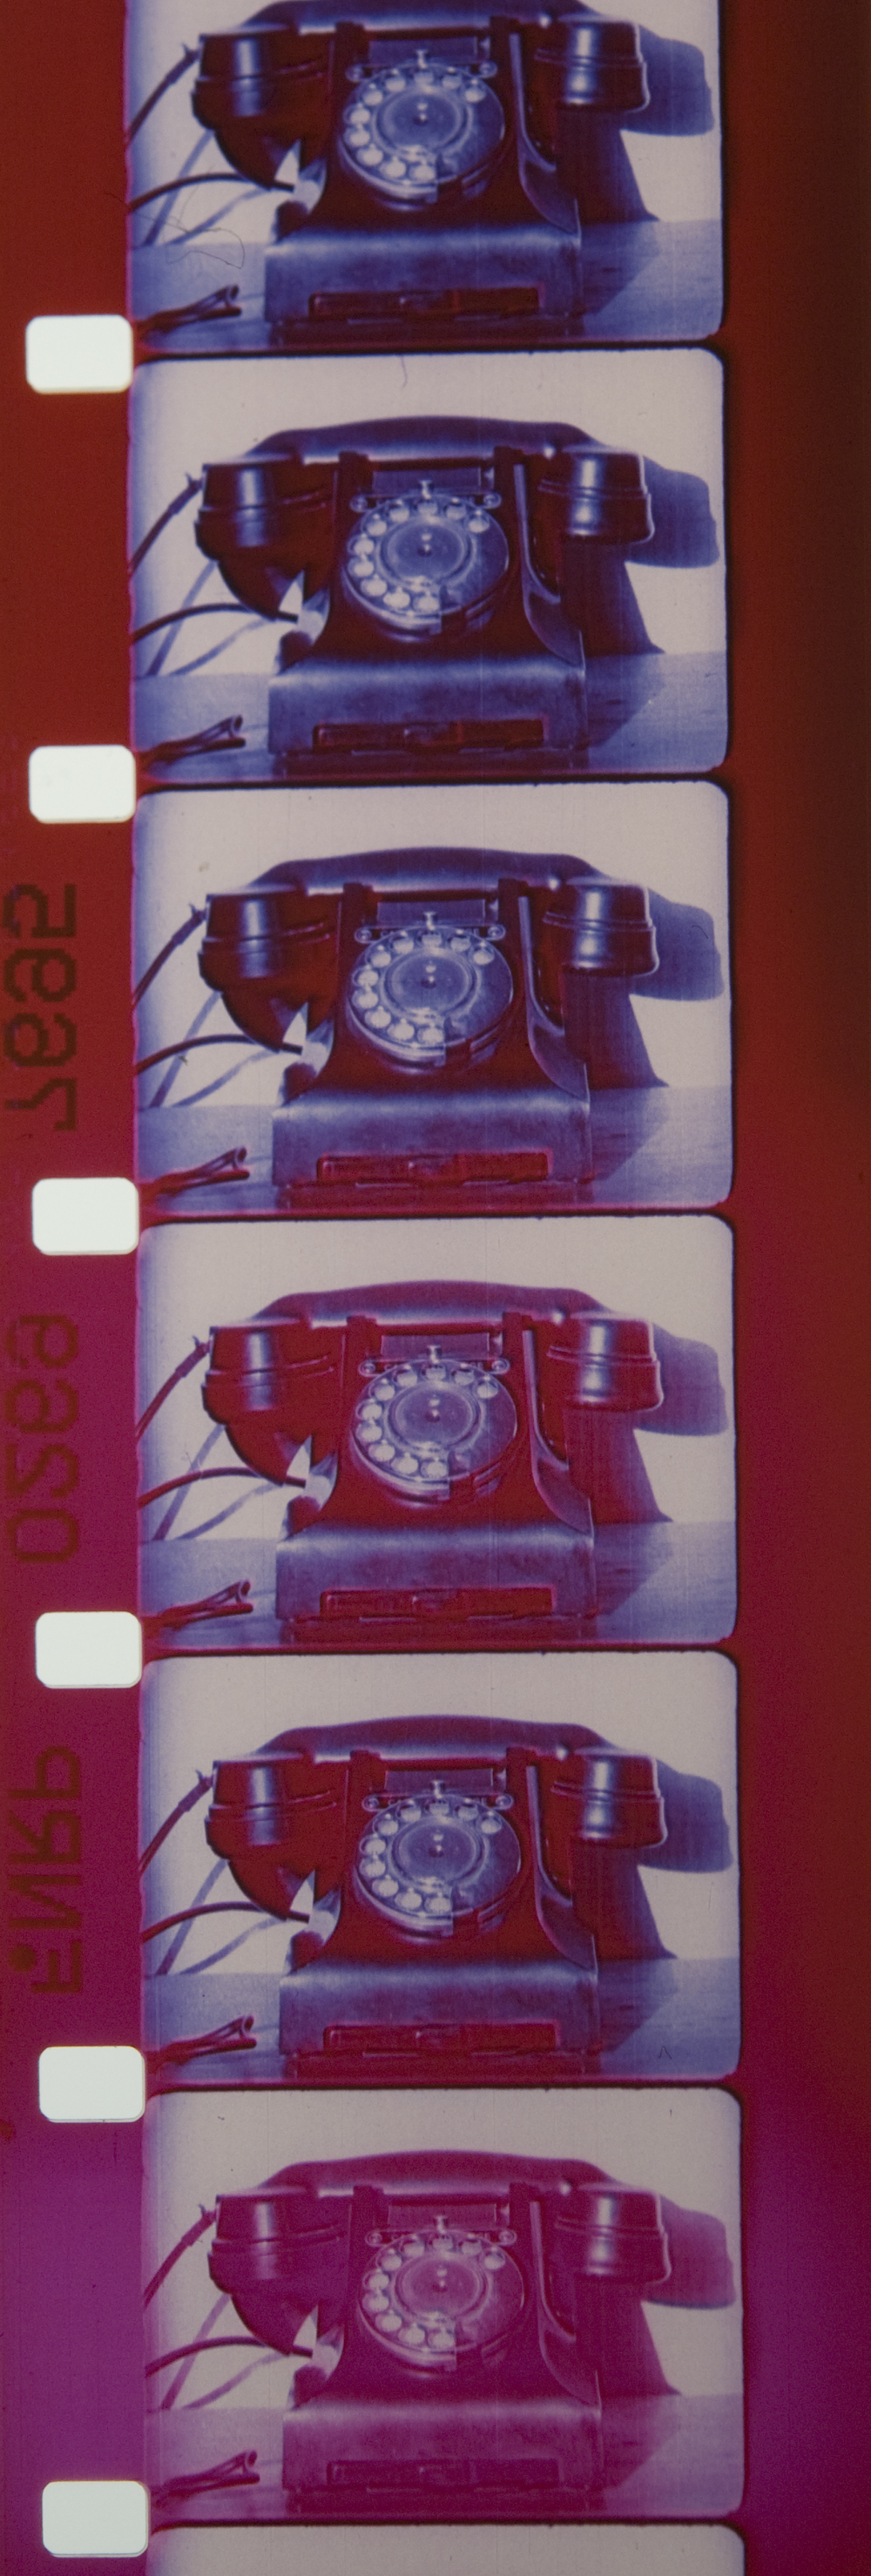 v=d/t film strip